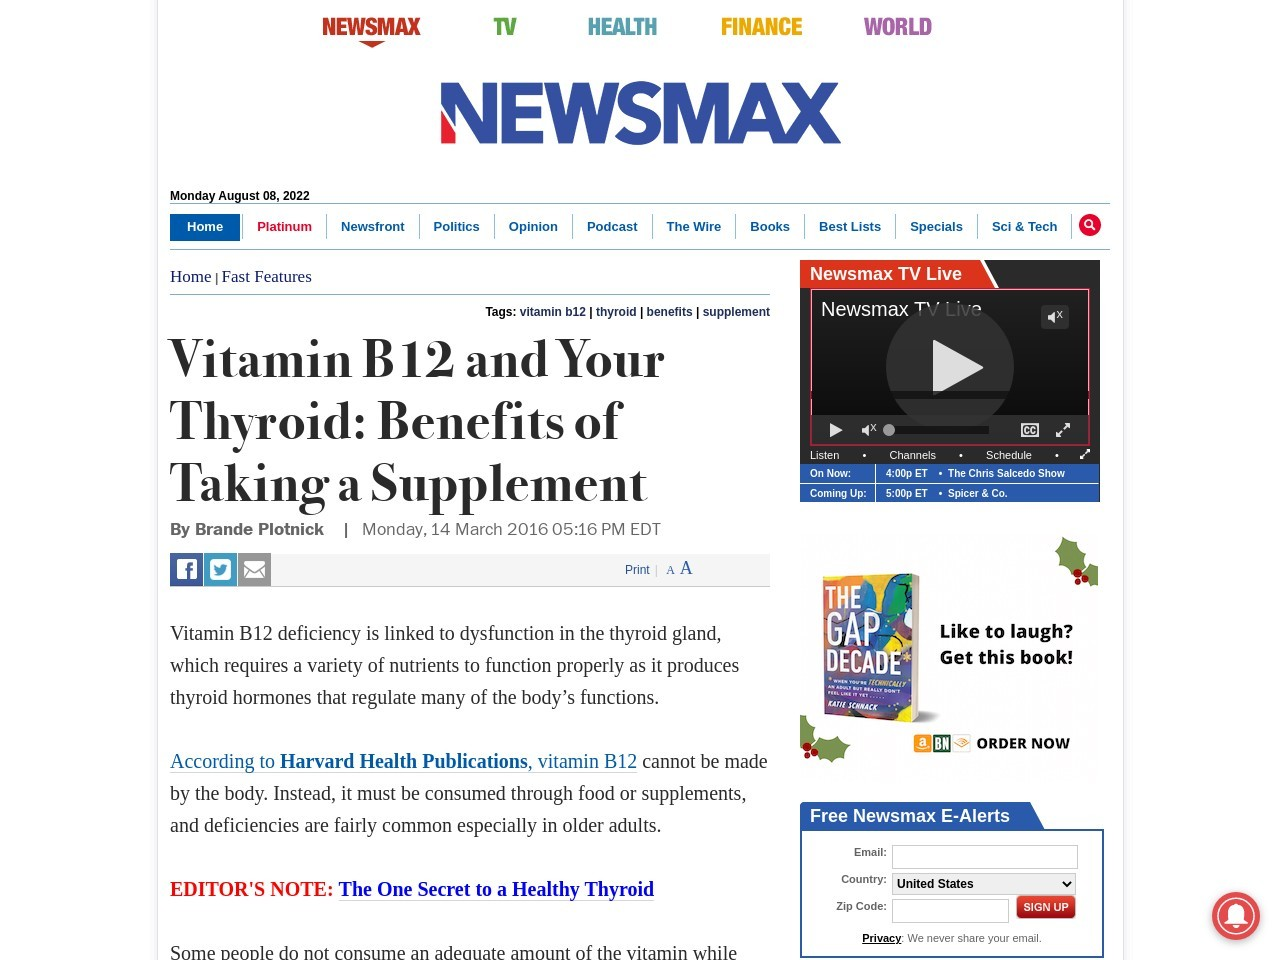 Vitamin B12 and Your Thyroid: Benefits of Taking a Supplement